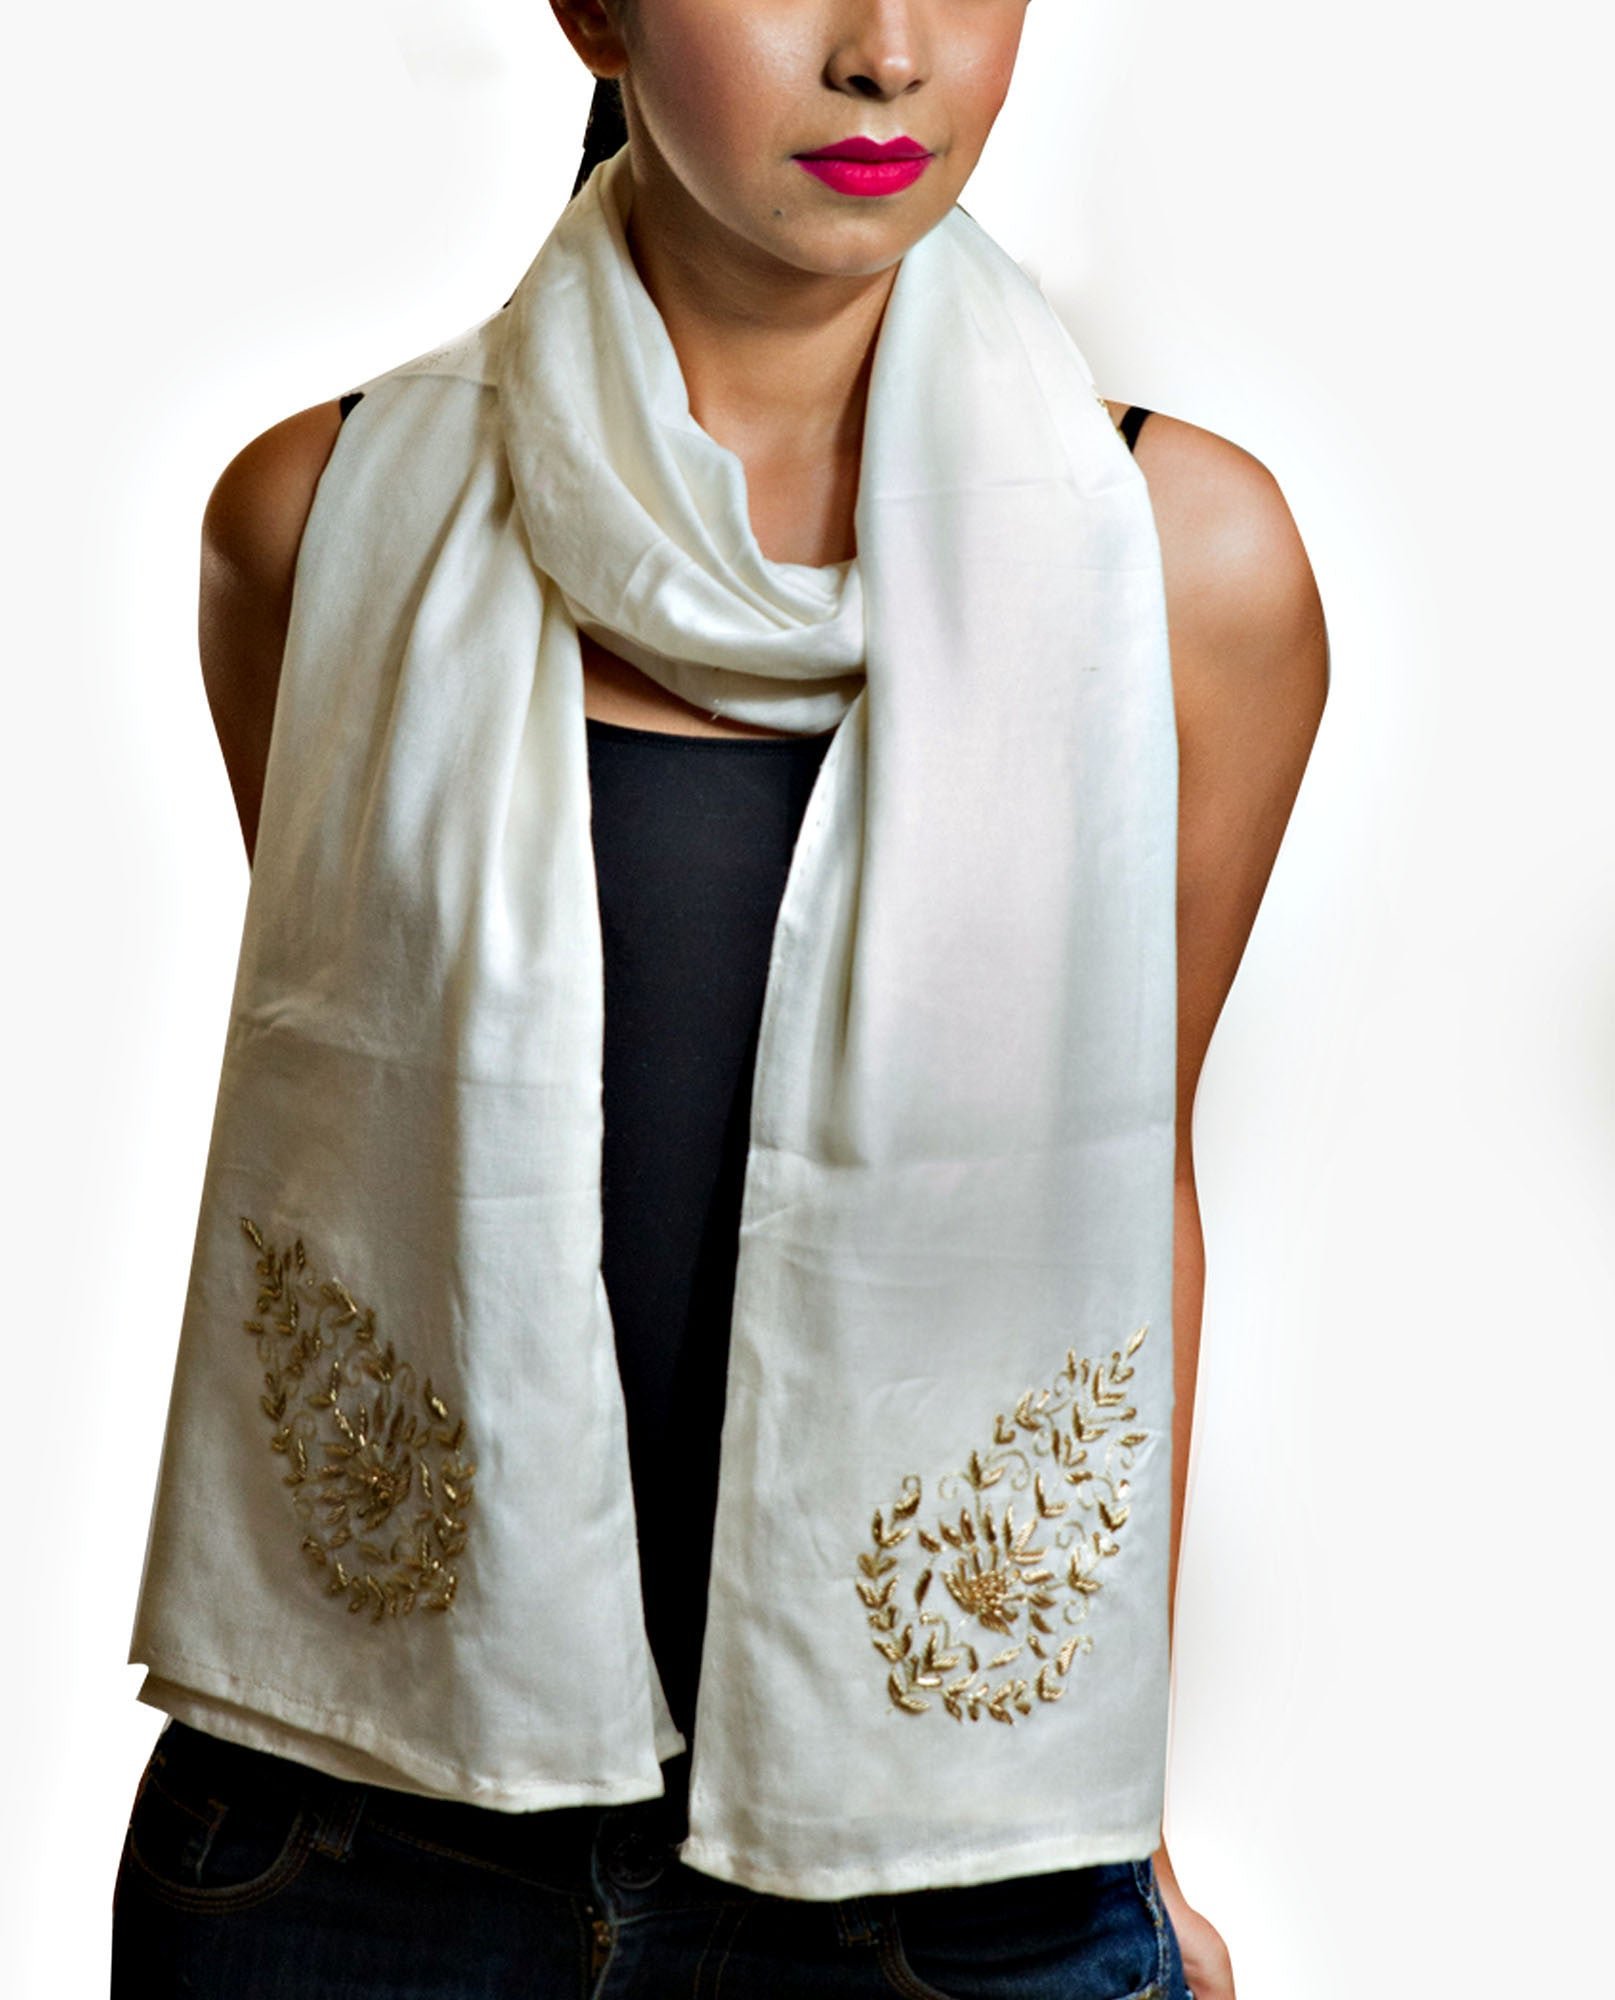 Stoles - Embroidered Stoles